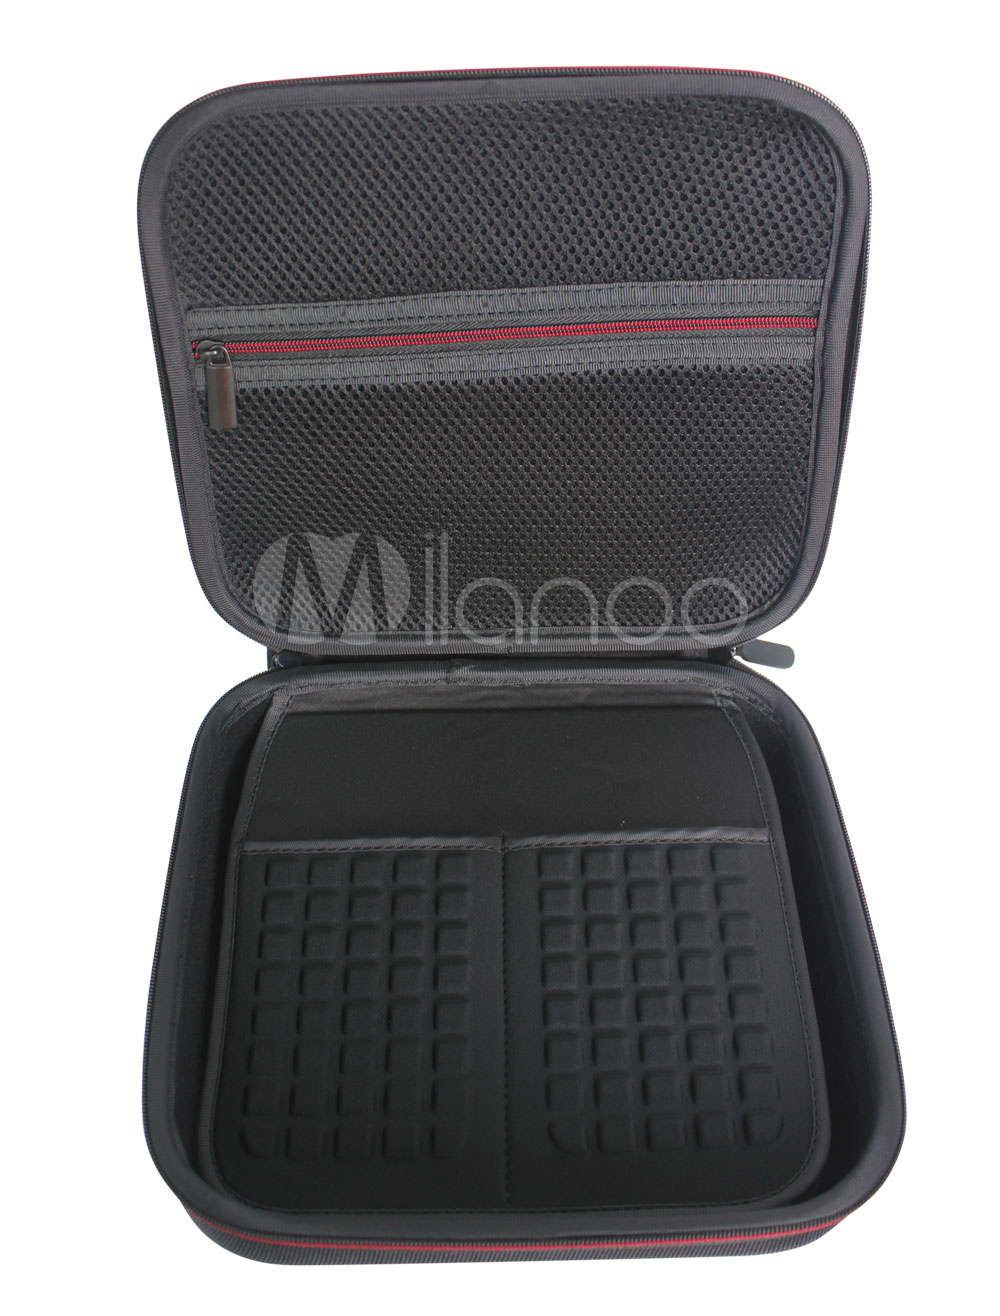 afbf55afd Marstark Carrying Case Moto Mods Durable Nylon Protective Pocket For Mods  Storage - Milanoo.com